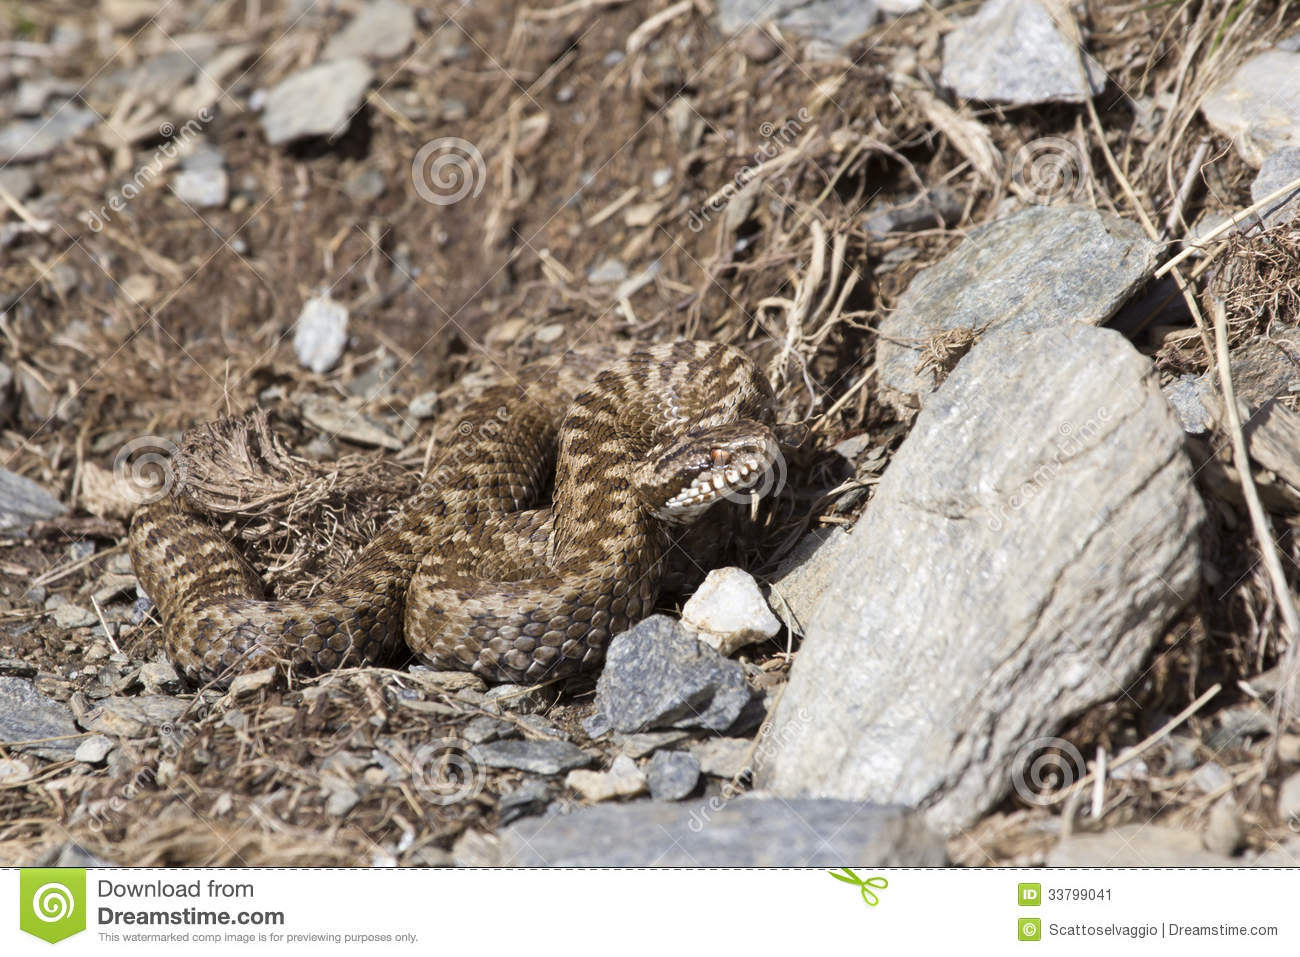 Asp viper in its natural environment. European Asp viper (Vipera aspis), italian Alps.